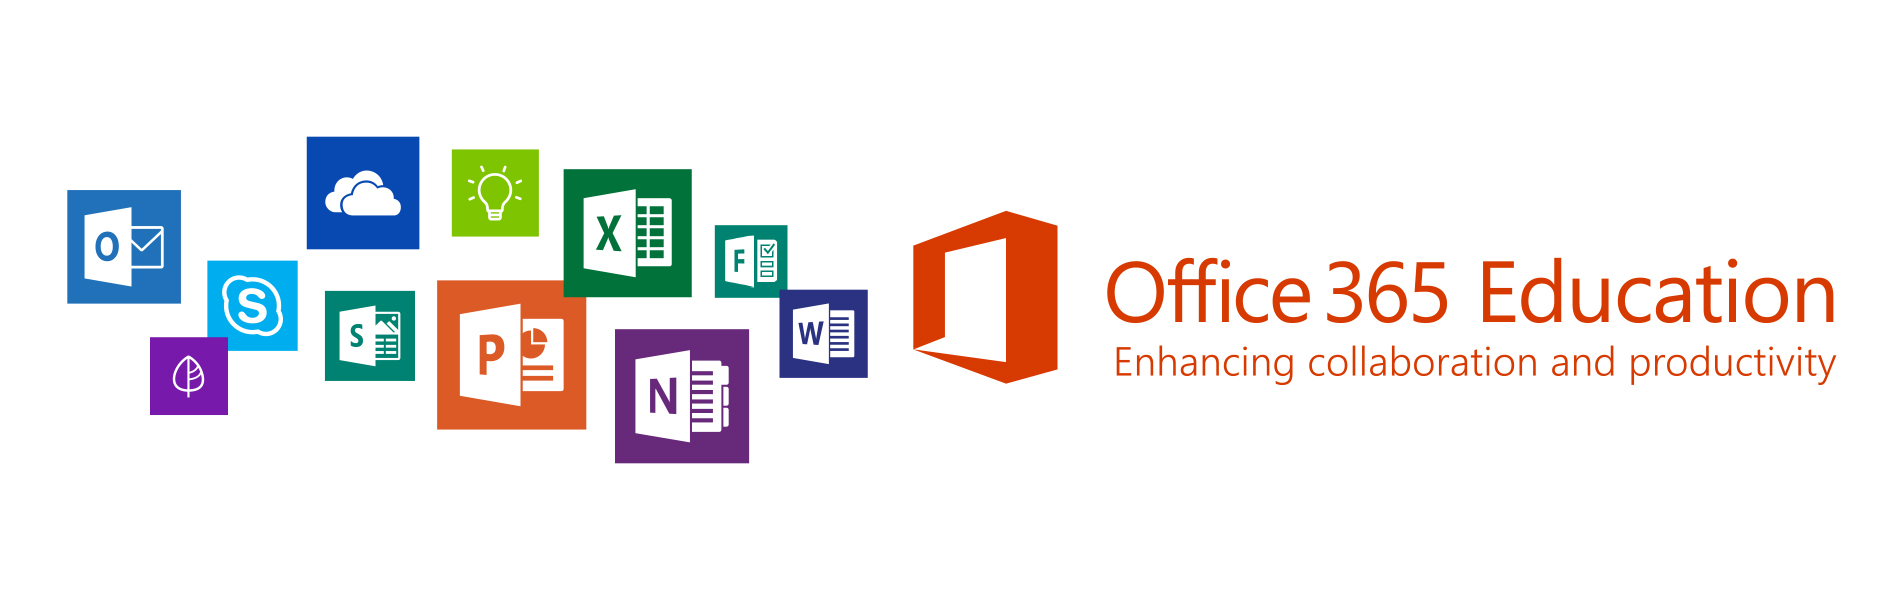 Image advertising Office 365 Education with Windows app icons